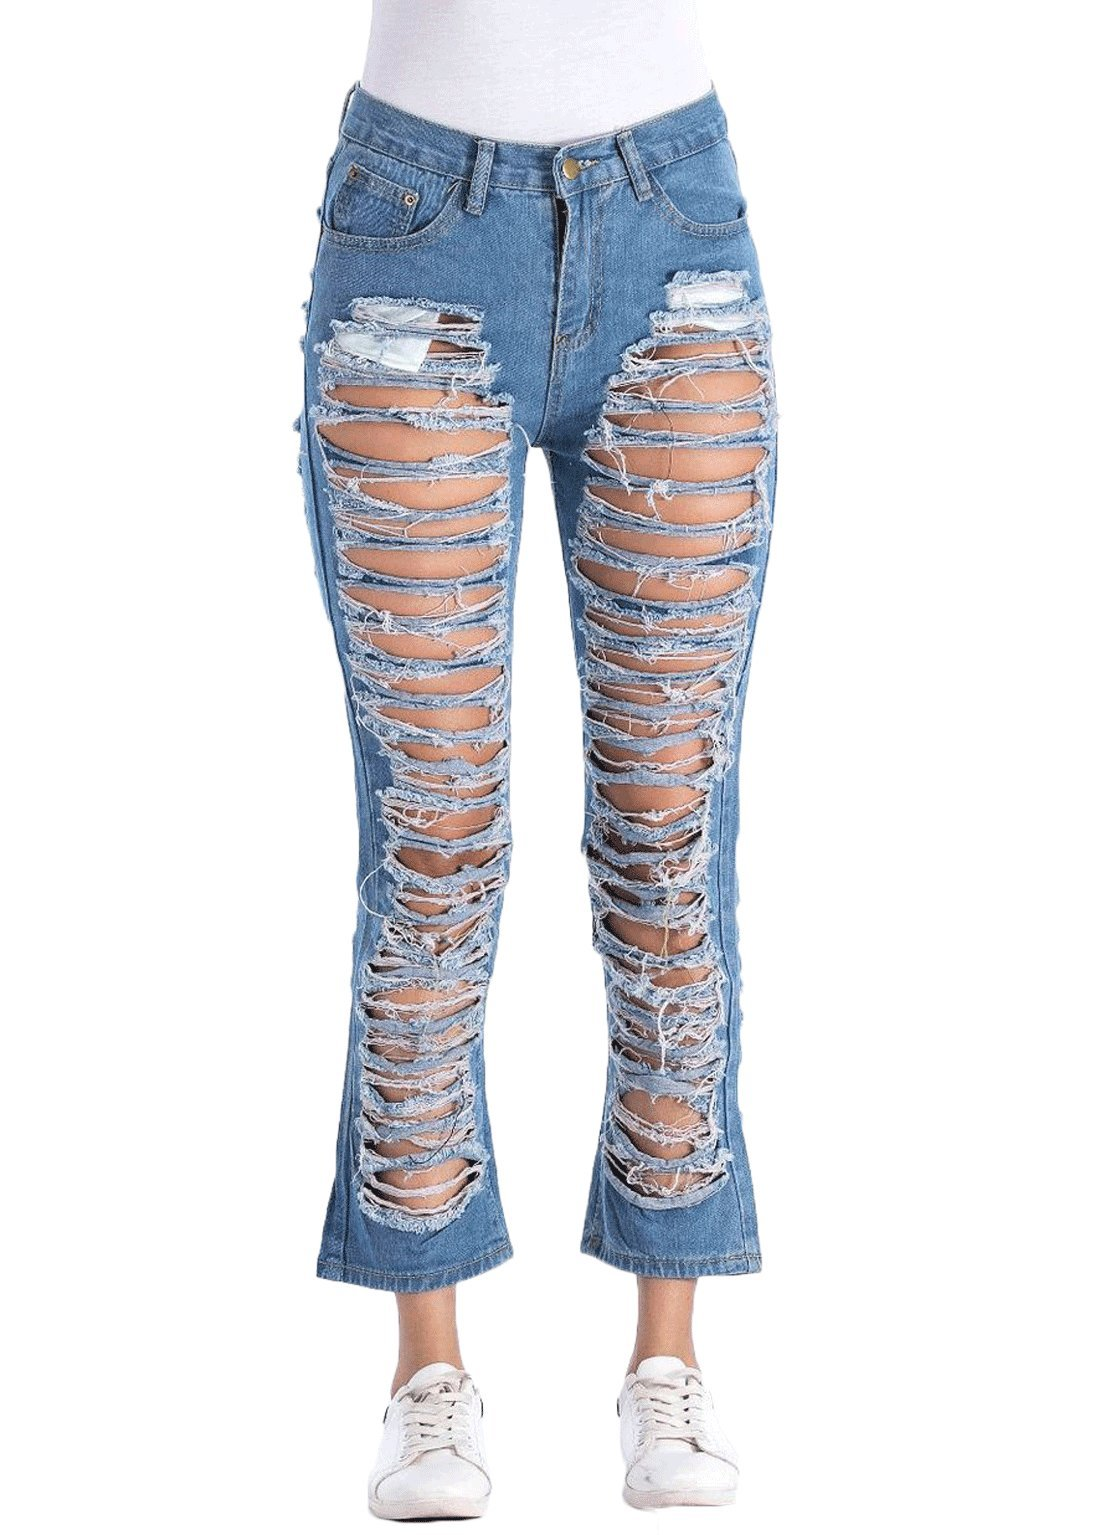 Chartou Women's Stylish Front-Back Ripped Torn Hole Denim Jeans Pants (Blue, X-Small)